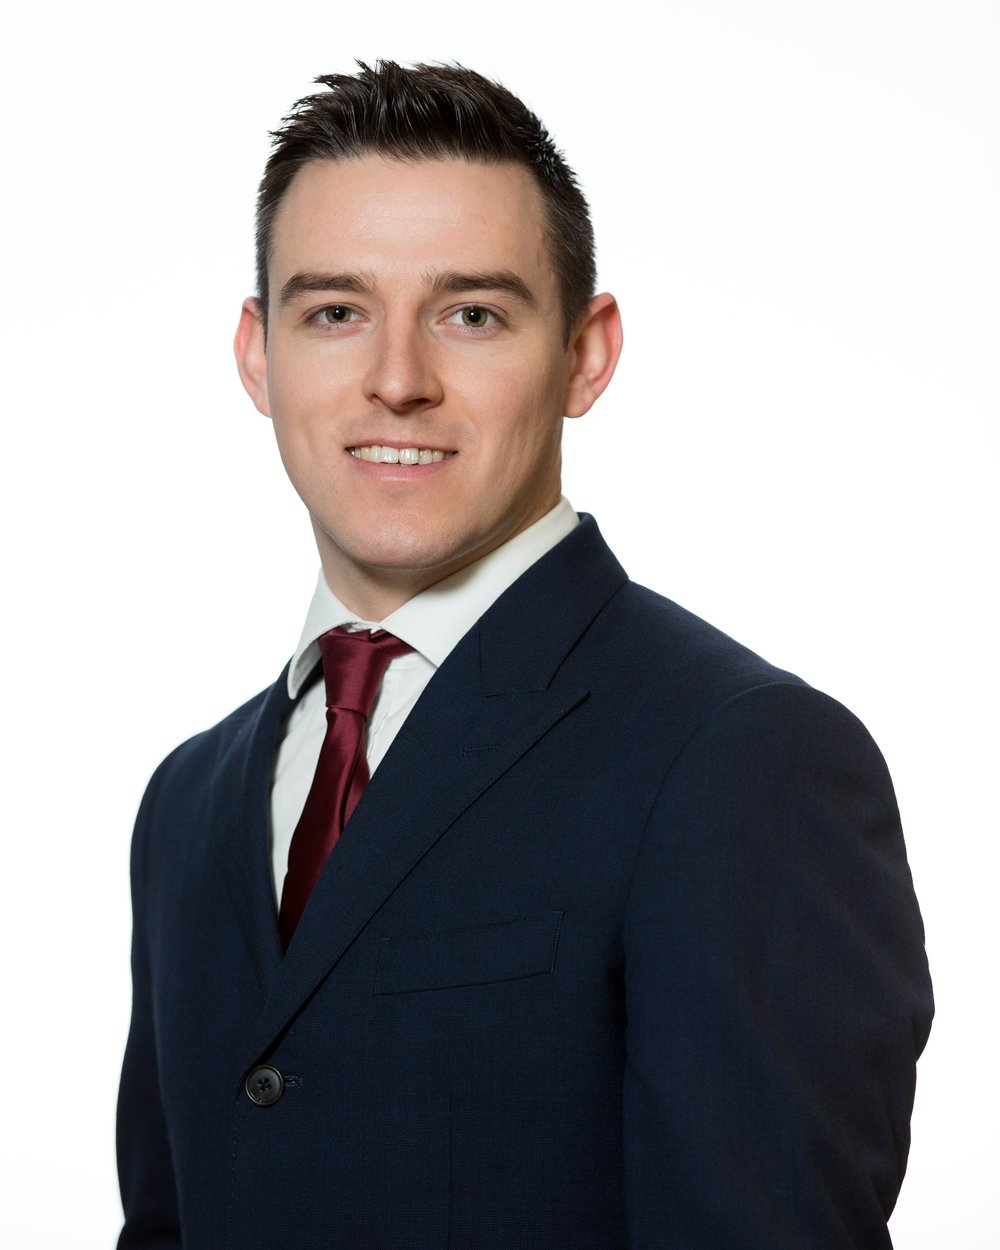 COLM BARRY - ASSOCIATE director   COLM.BARRY@CSCONSULTING.IE